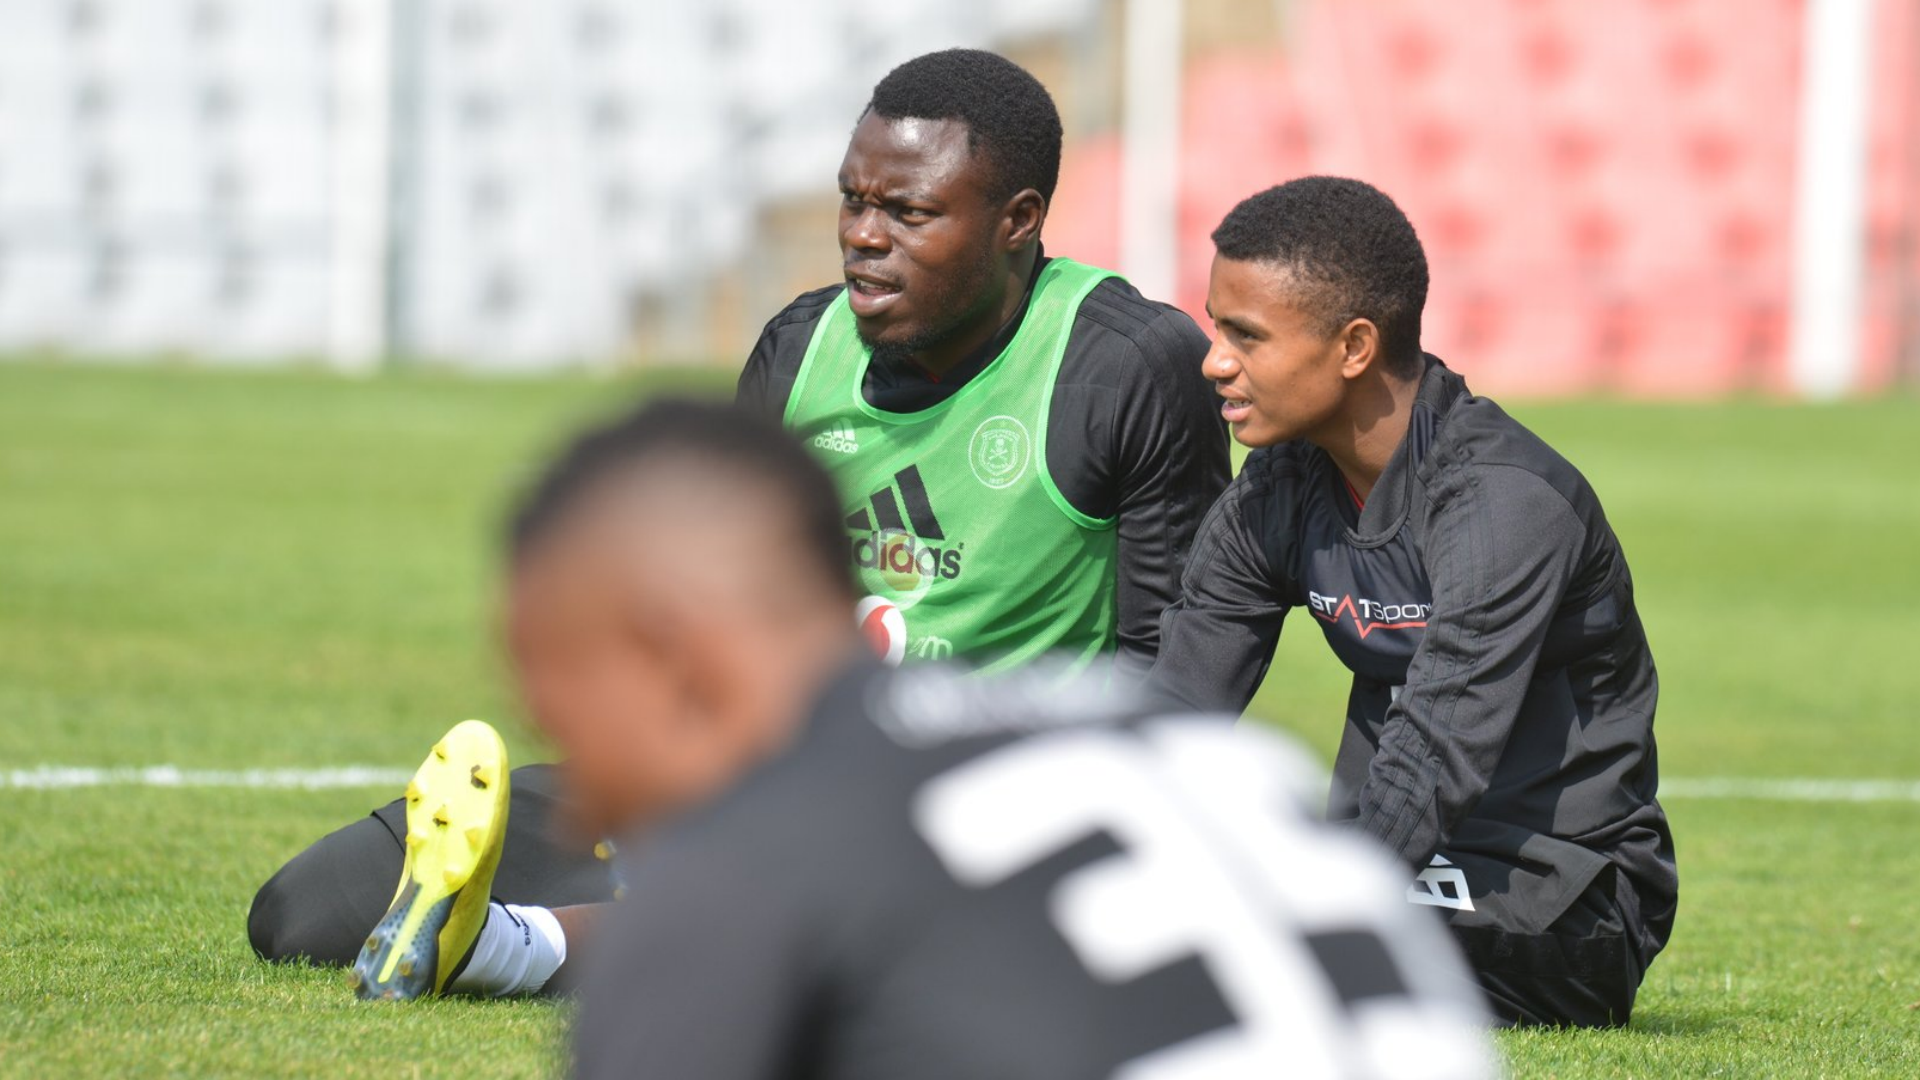 Transfer news: The latest rumours from Kaizer Chiefs, Orlando